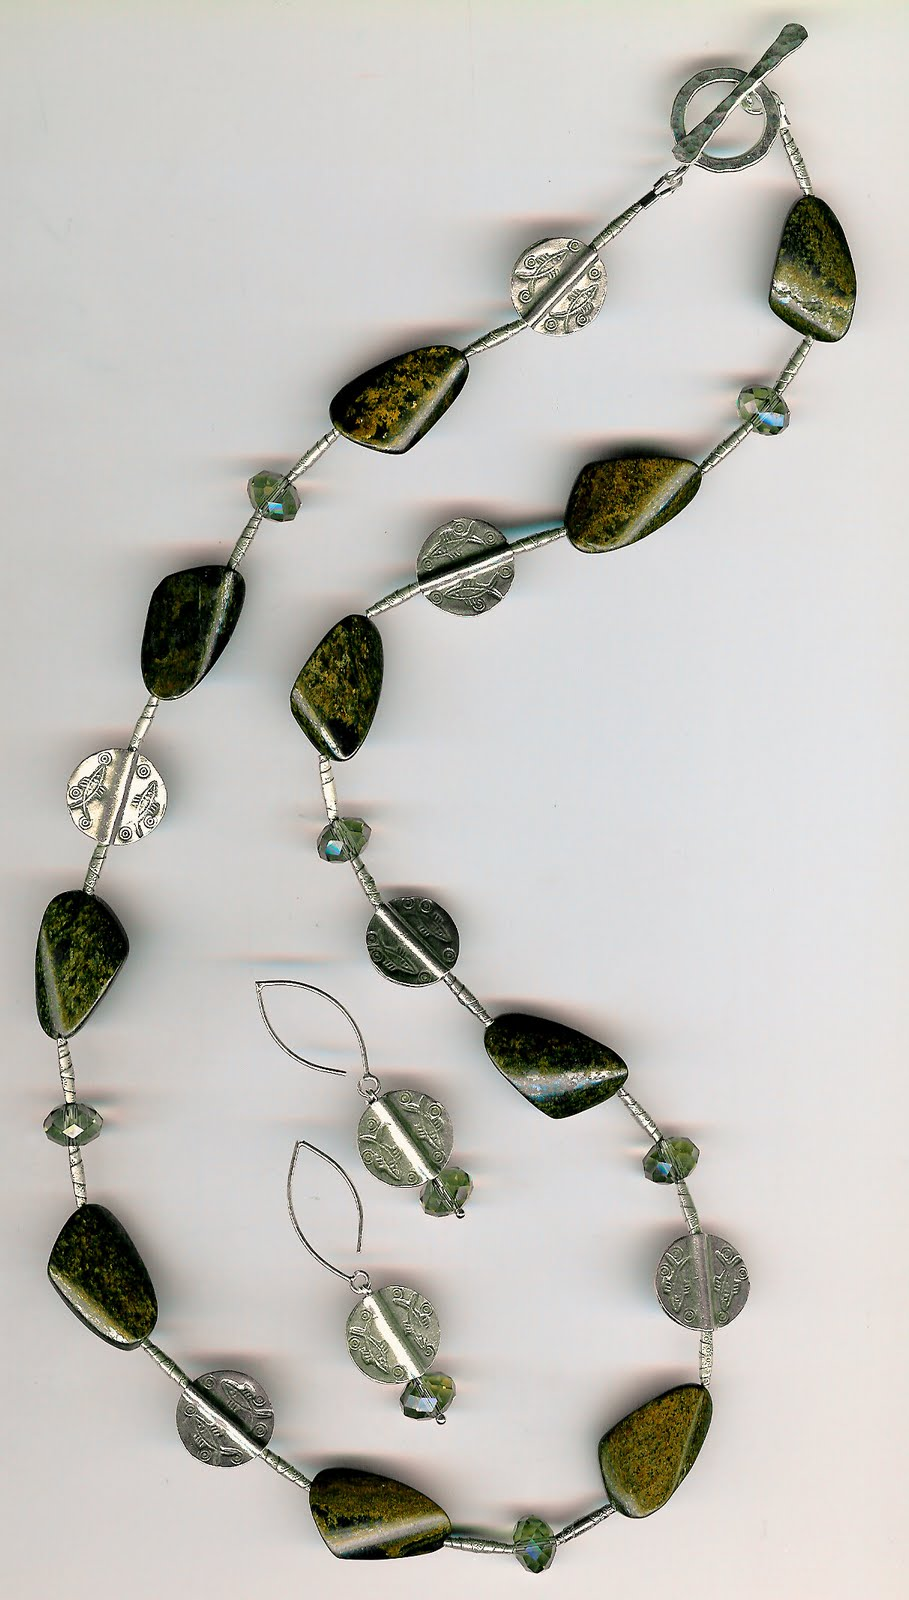 209. Bronzite, Crystals with Karen Hill Sterling Silver + Earrings